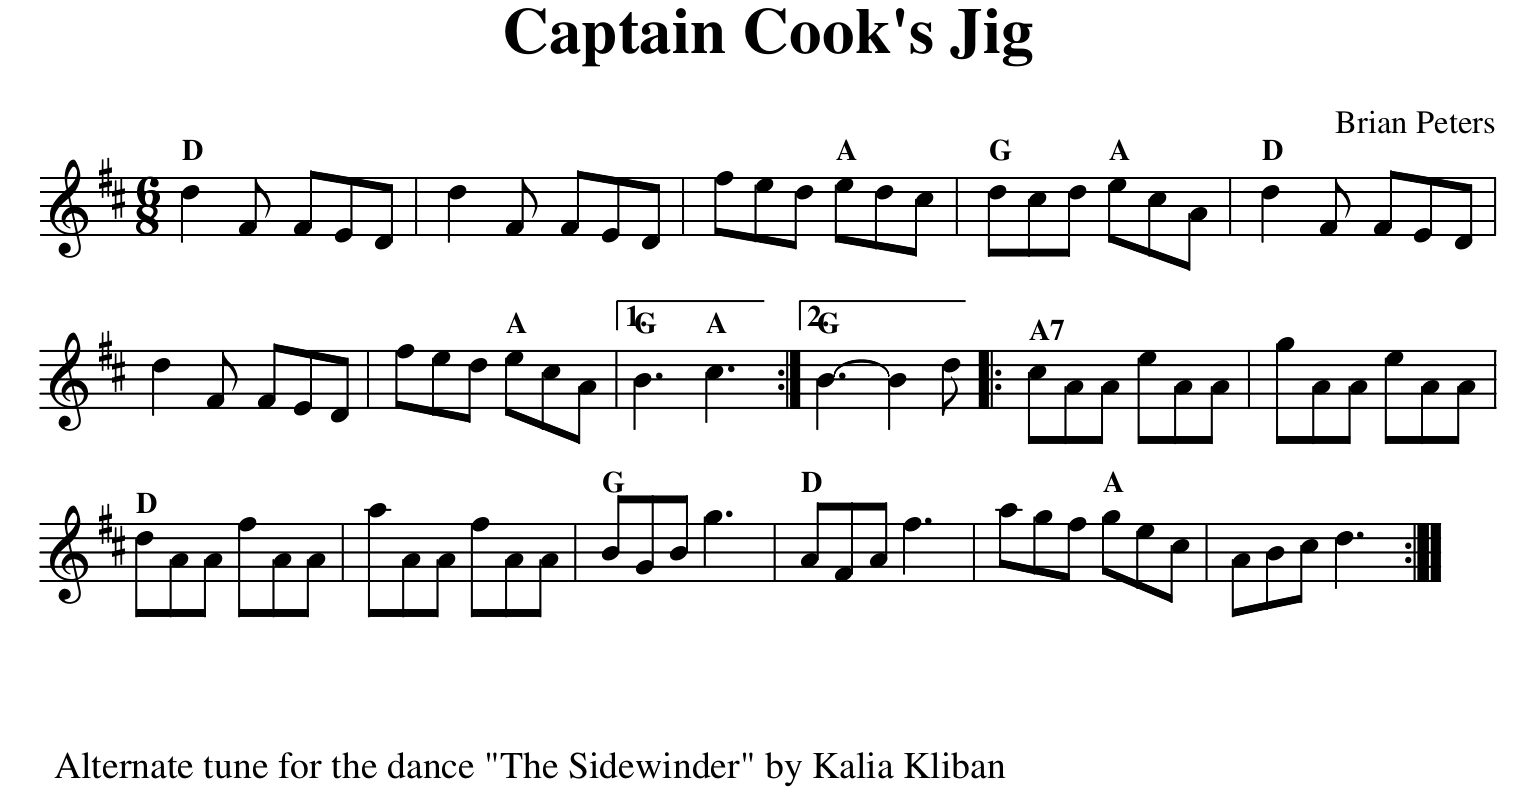 Captain Coo's Jig